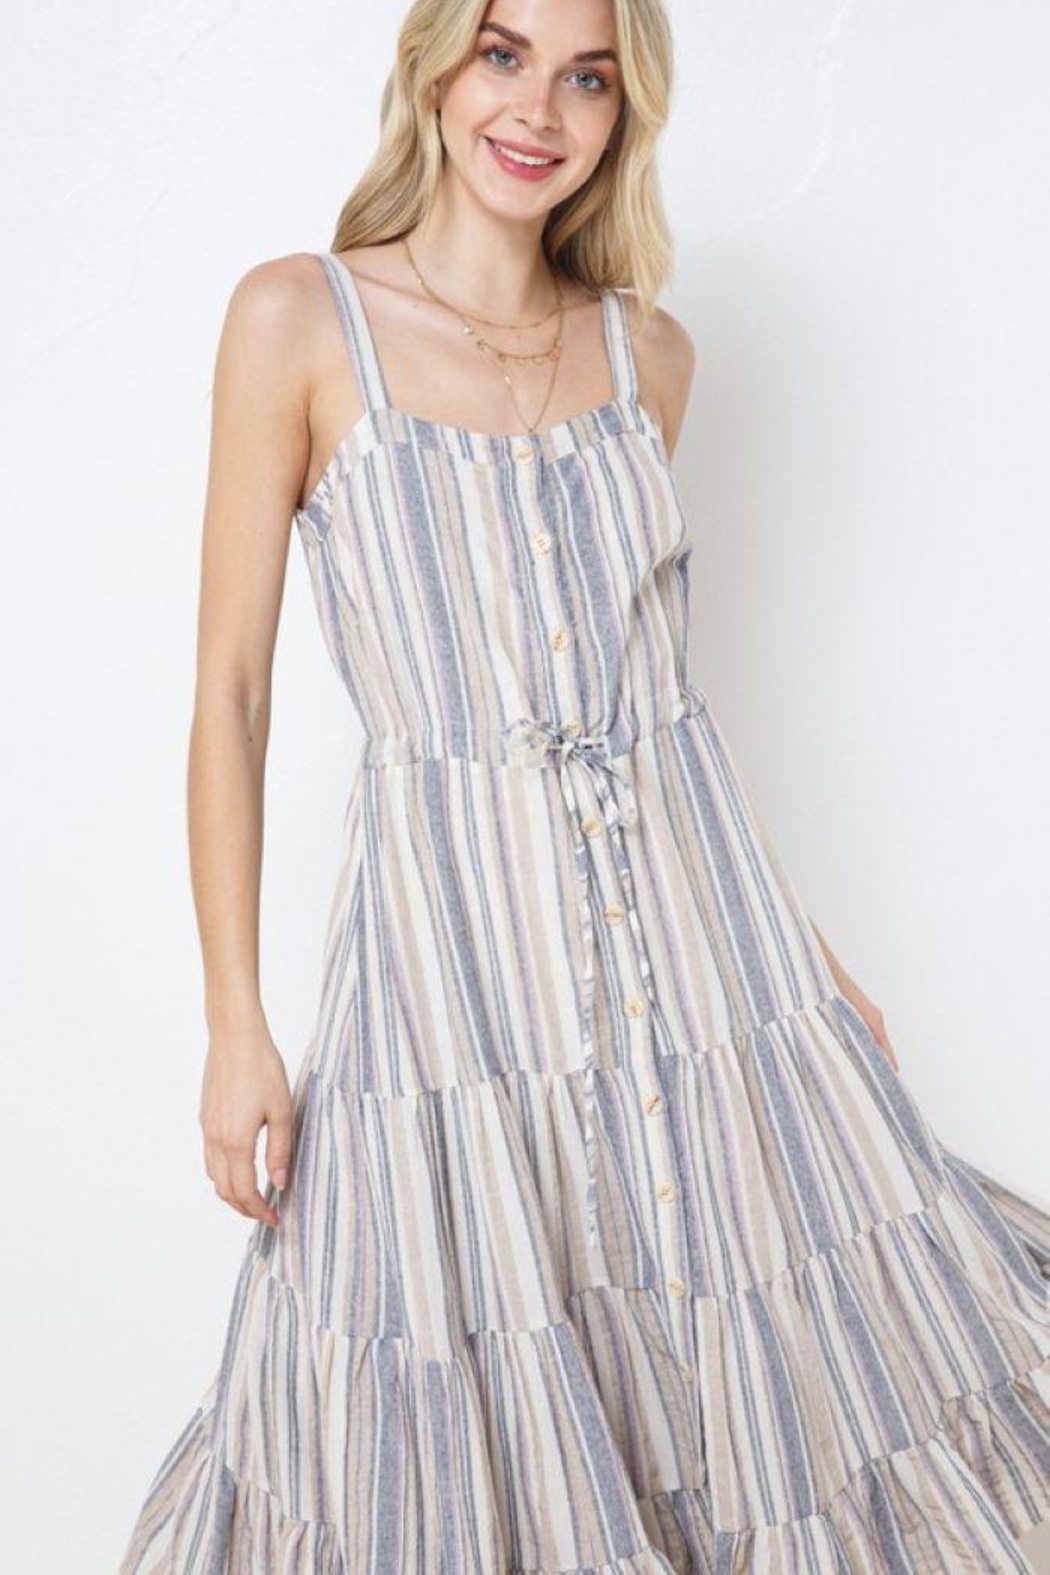 AKAIV Spaghetti Strap Tiered Sundress - Front Full Image